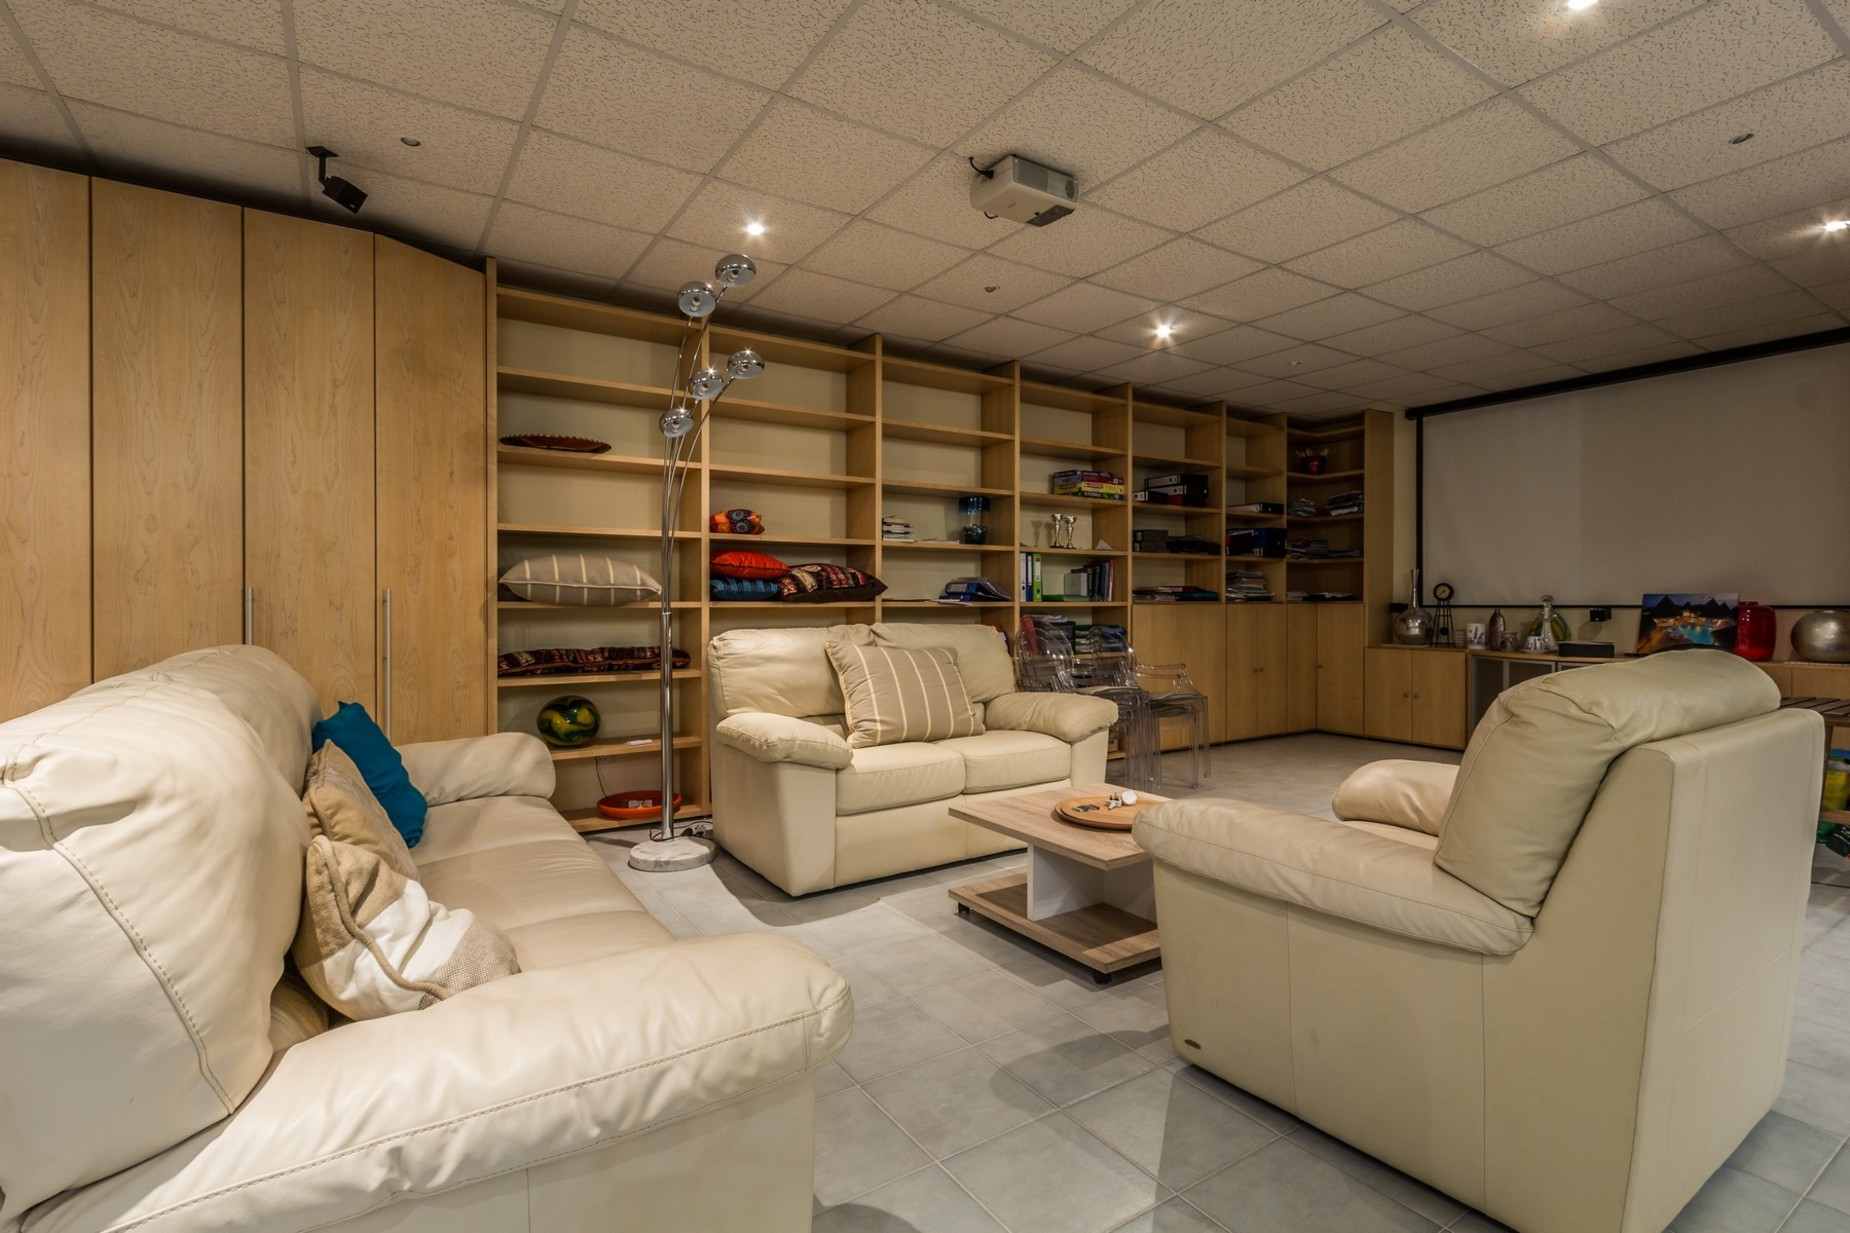 2 bed Apartment For Sale in Sliema, Sliema - thumb 16